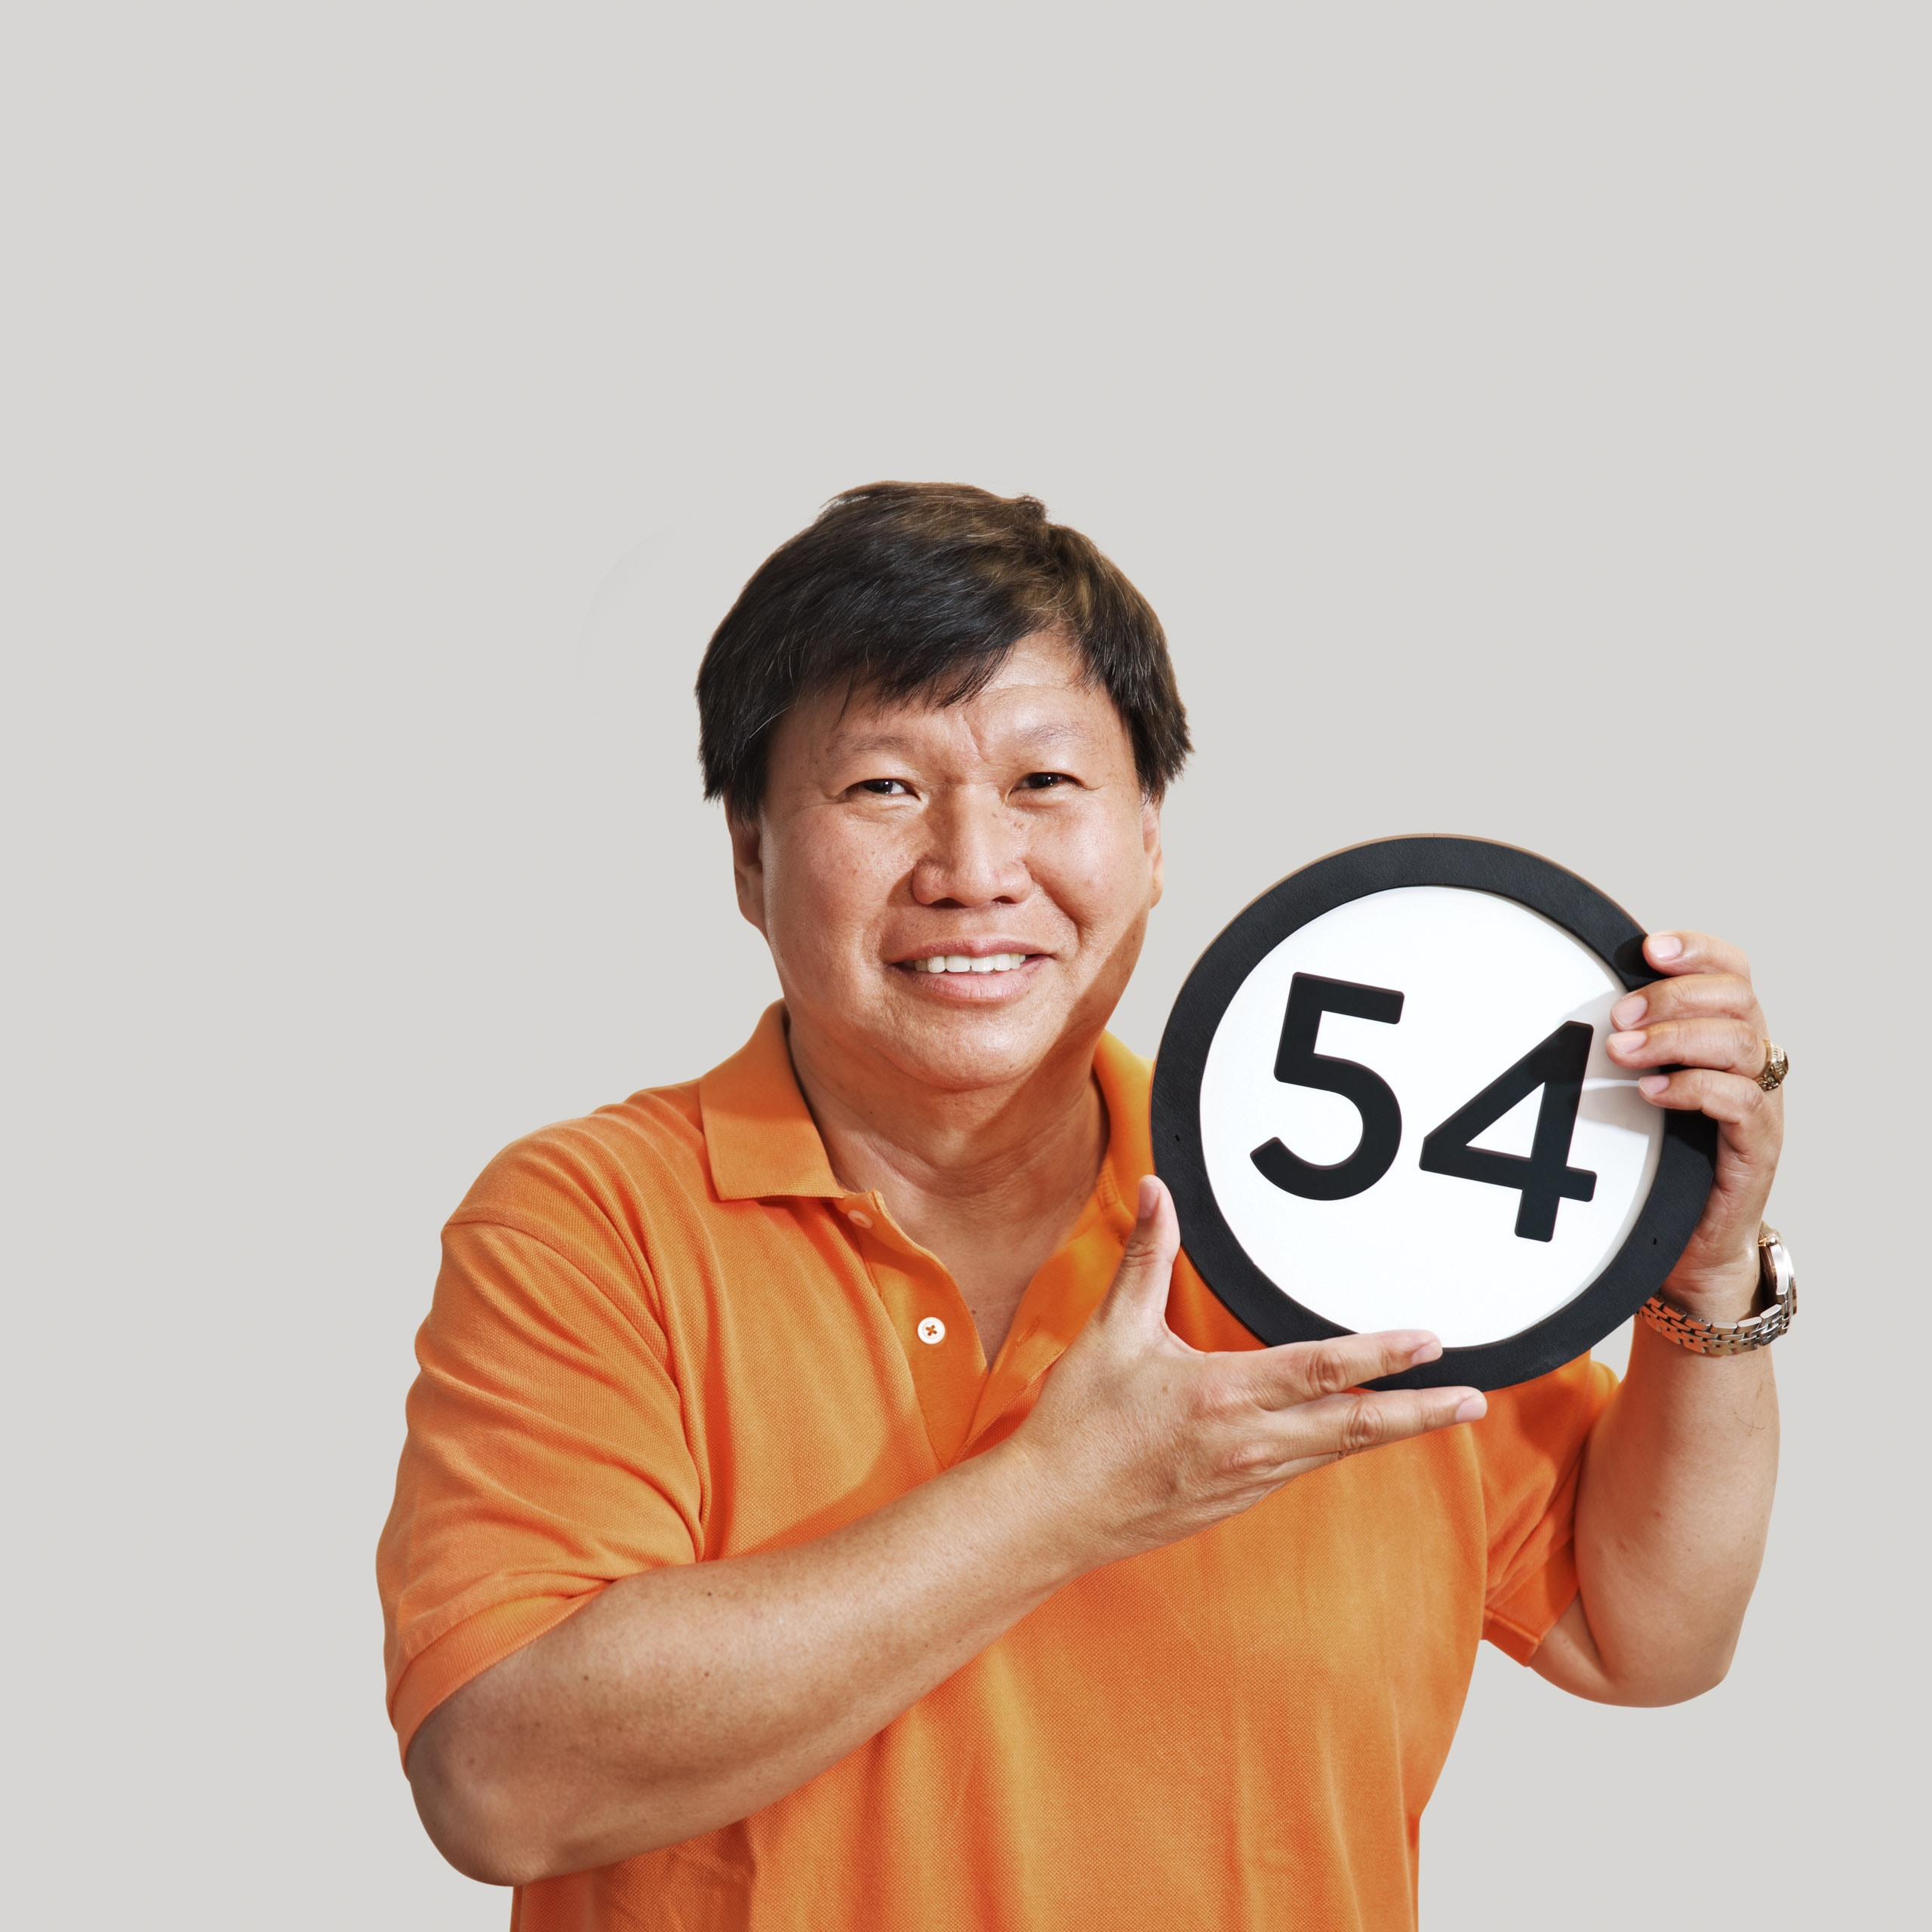 54 year old man wears a bright orange polo shirt and a relaxed smile that spreads across his whole face. His watch looks heavy and there is a college ring on his finger. In his hands just under his left cheek he holds up a token with the number fifty-four on it. This digital image is part of the 1 to Infinity portrait photography series by Danny Goldfield.